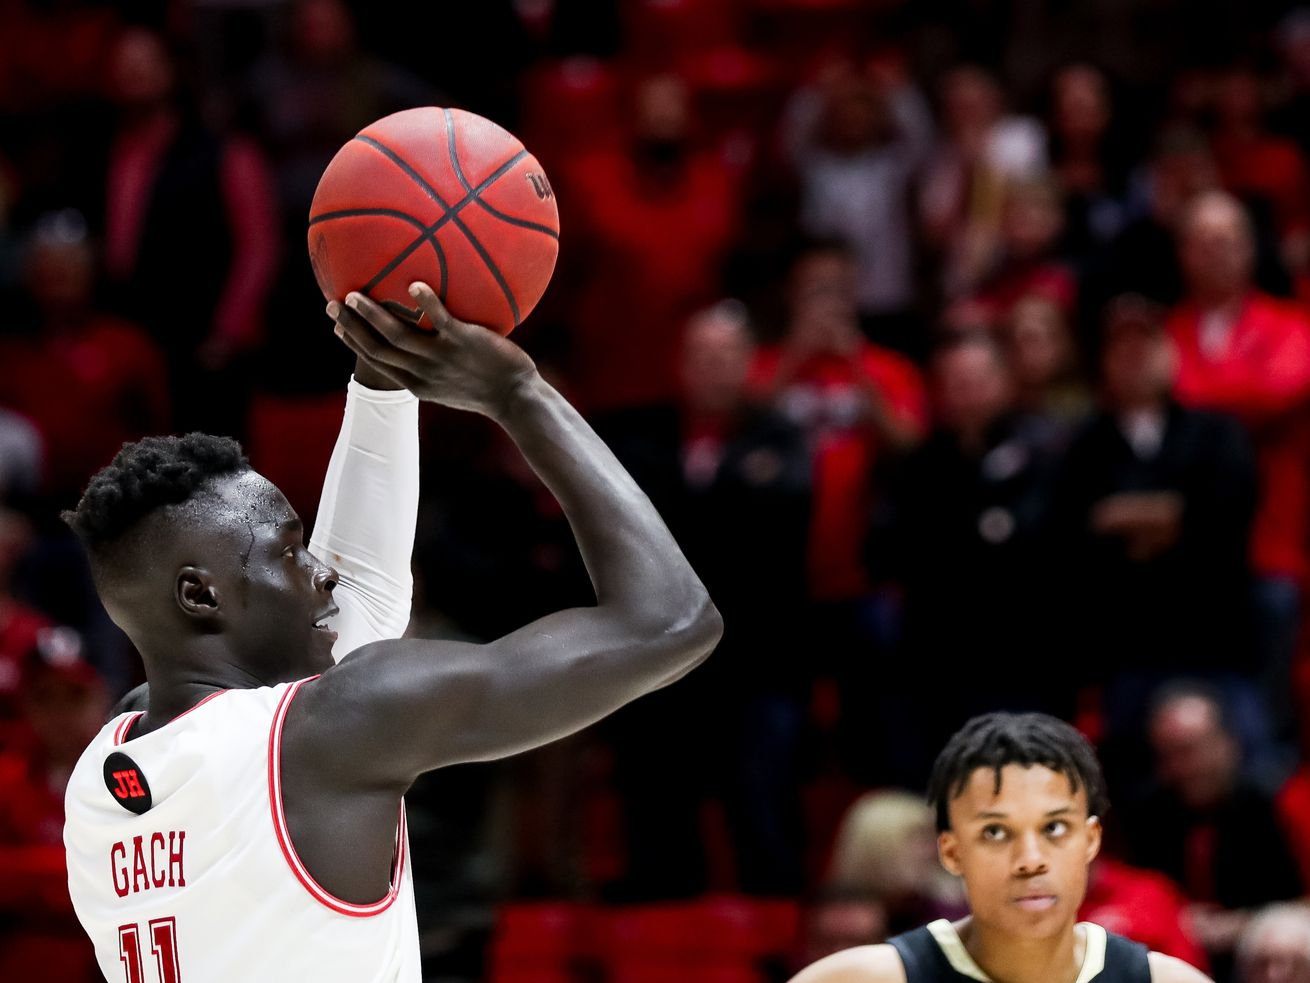 Report: BYU, Utah State among teams that have reached out to Both Gach